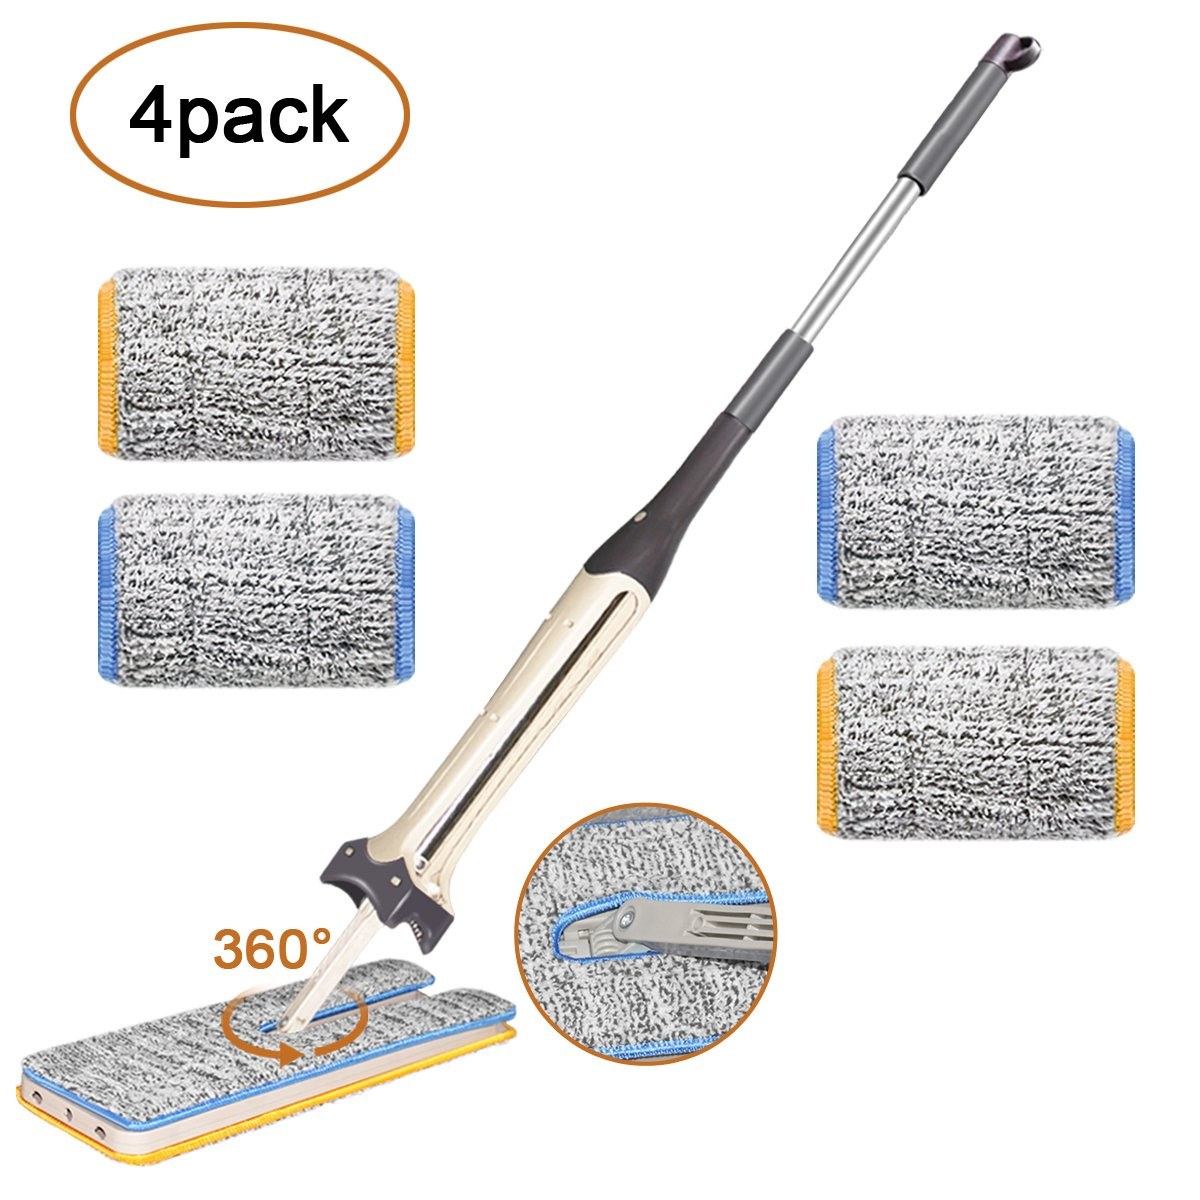 Double Sided Lazy Mop,【Upgrade Version】Umwon 360 Spin Hands–free Automatic Squeeze Flip Floor Mop, Self Wringing Wet & Dry Flat Mop for Cleaning Hardwood or Window Wall (4 Microfiber Mop Pads – 13inch